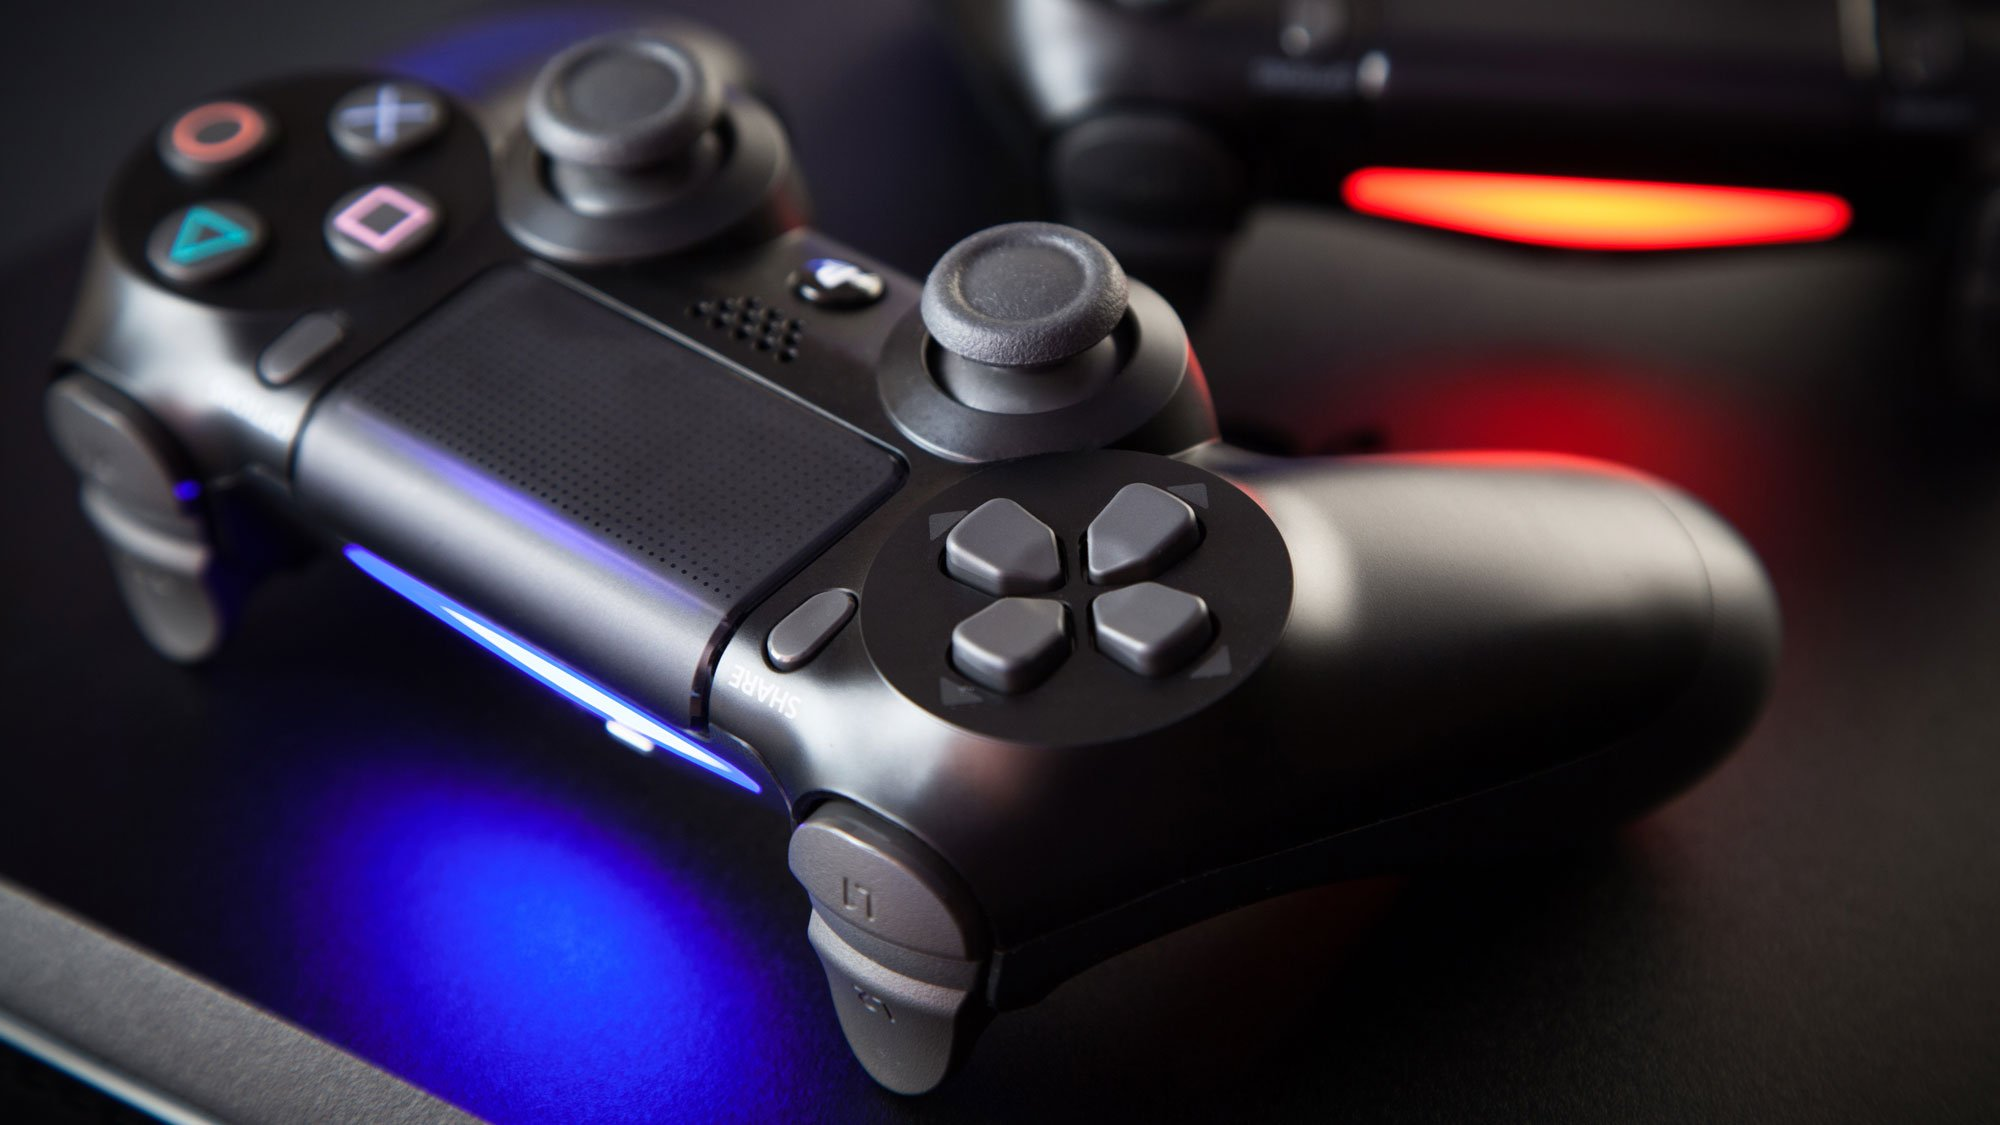 Best PS4 controller 2019: The finest DualShock 4 alternatives